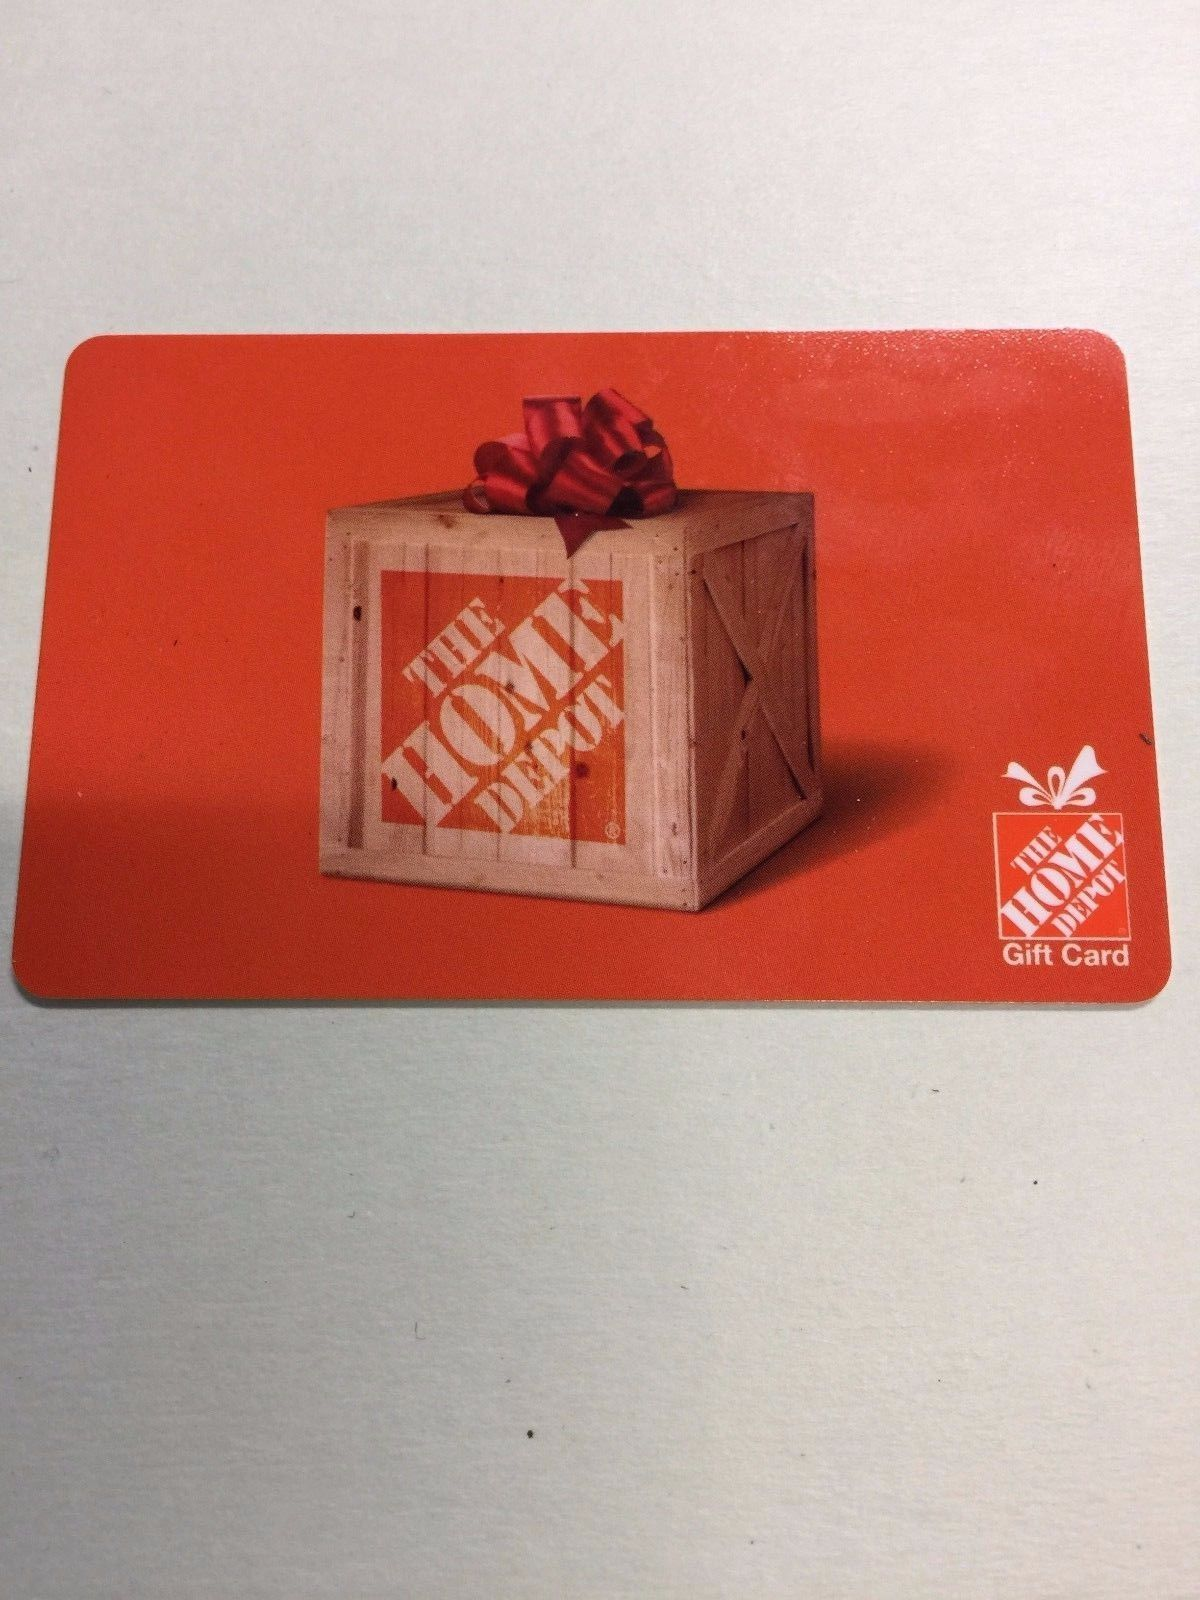 Home Depot Gift Card Checkout 2021